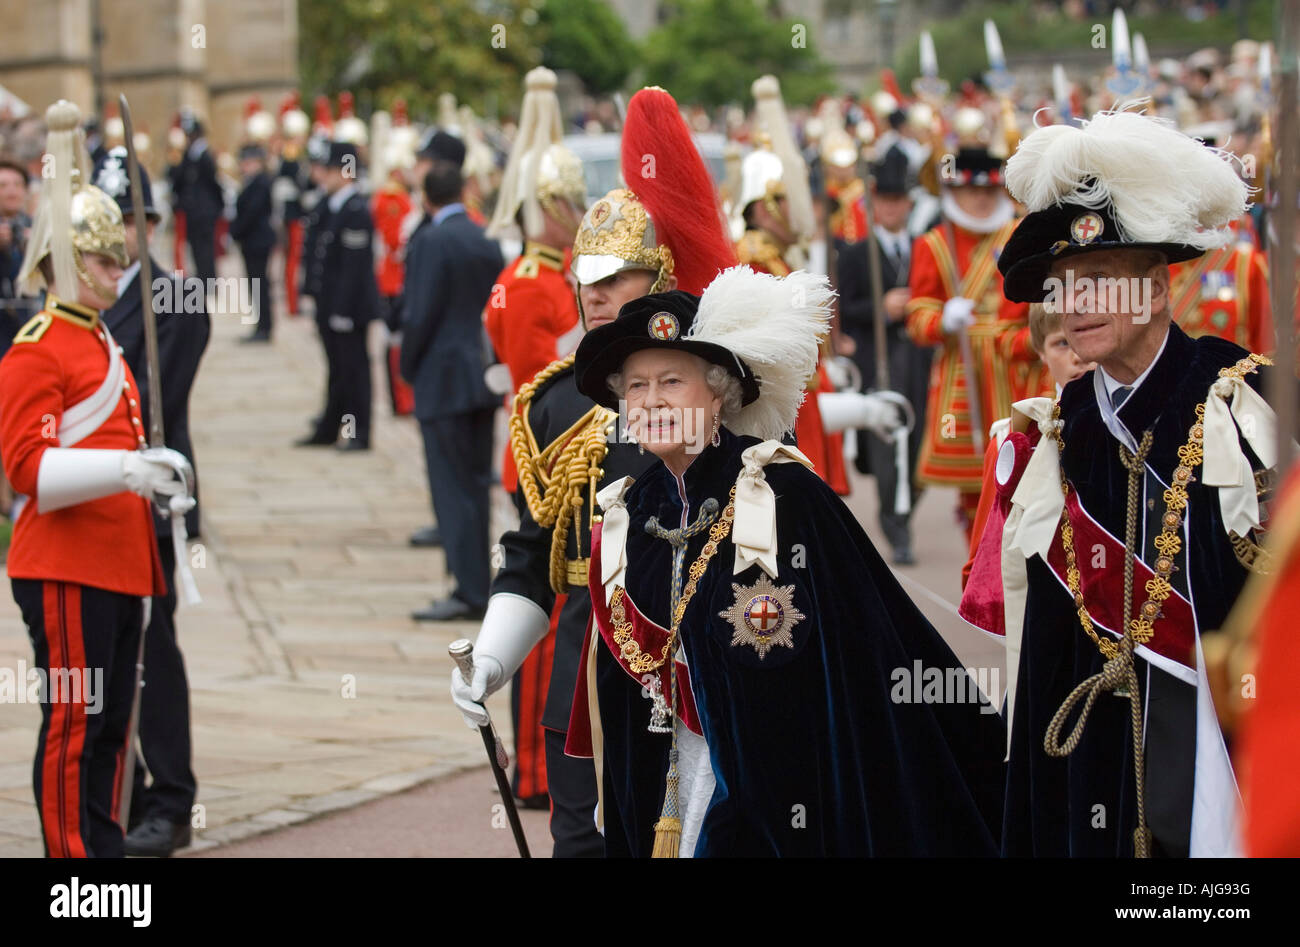 HM the Queen and HRH the Duke of Edinburgh during the Order of the Garter Procession outside St George's Chapel - Stock Image